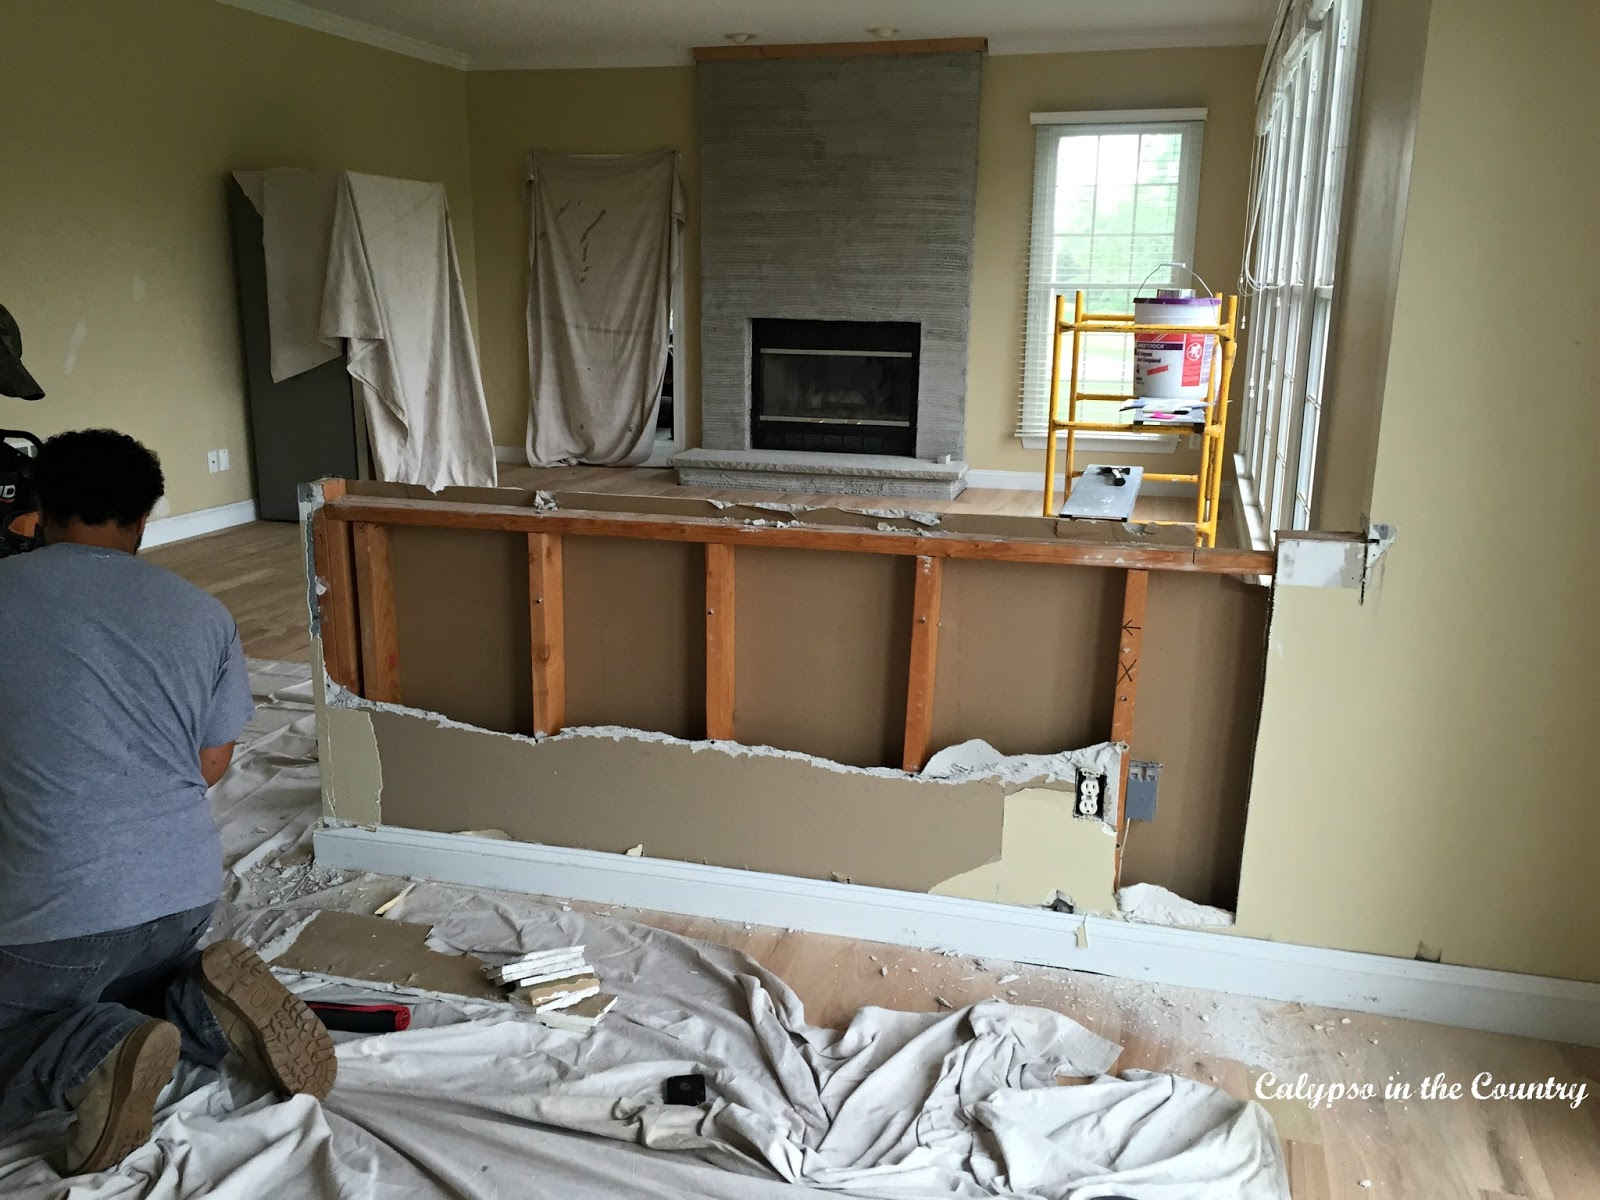 Tearing down the half wall separating the kitchen and family room